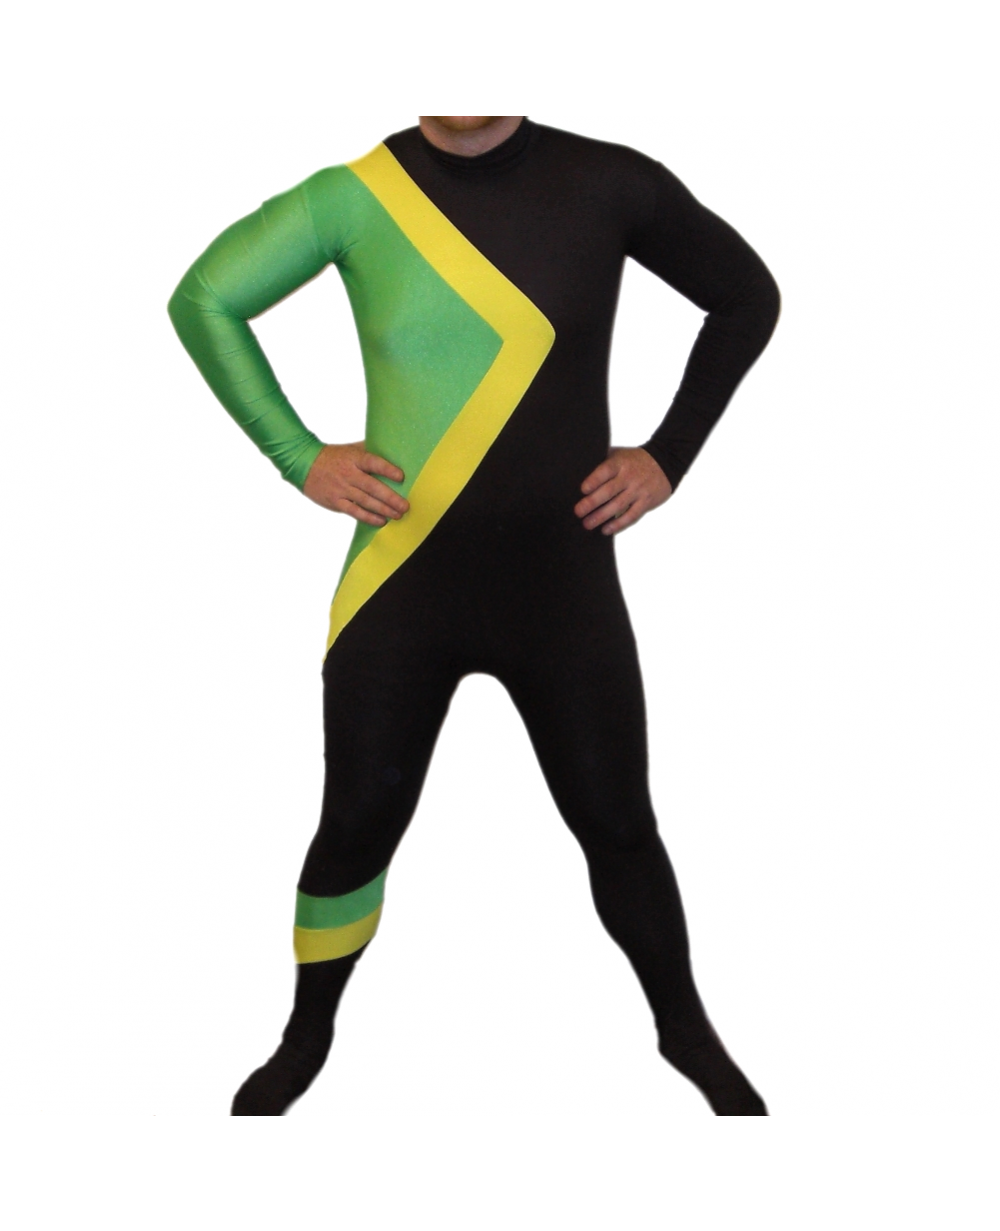 Jamaican Halloween Costume cool runnings jamaican bobsled team skin costume halloween party gift size s xxl More Views Jamaican Bobsled Team Costume